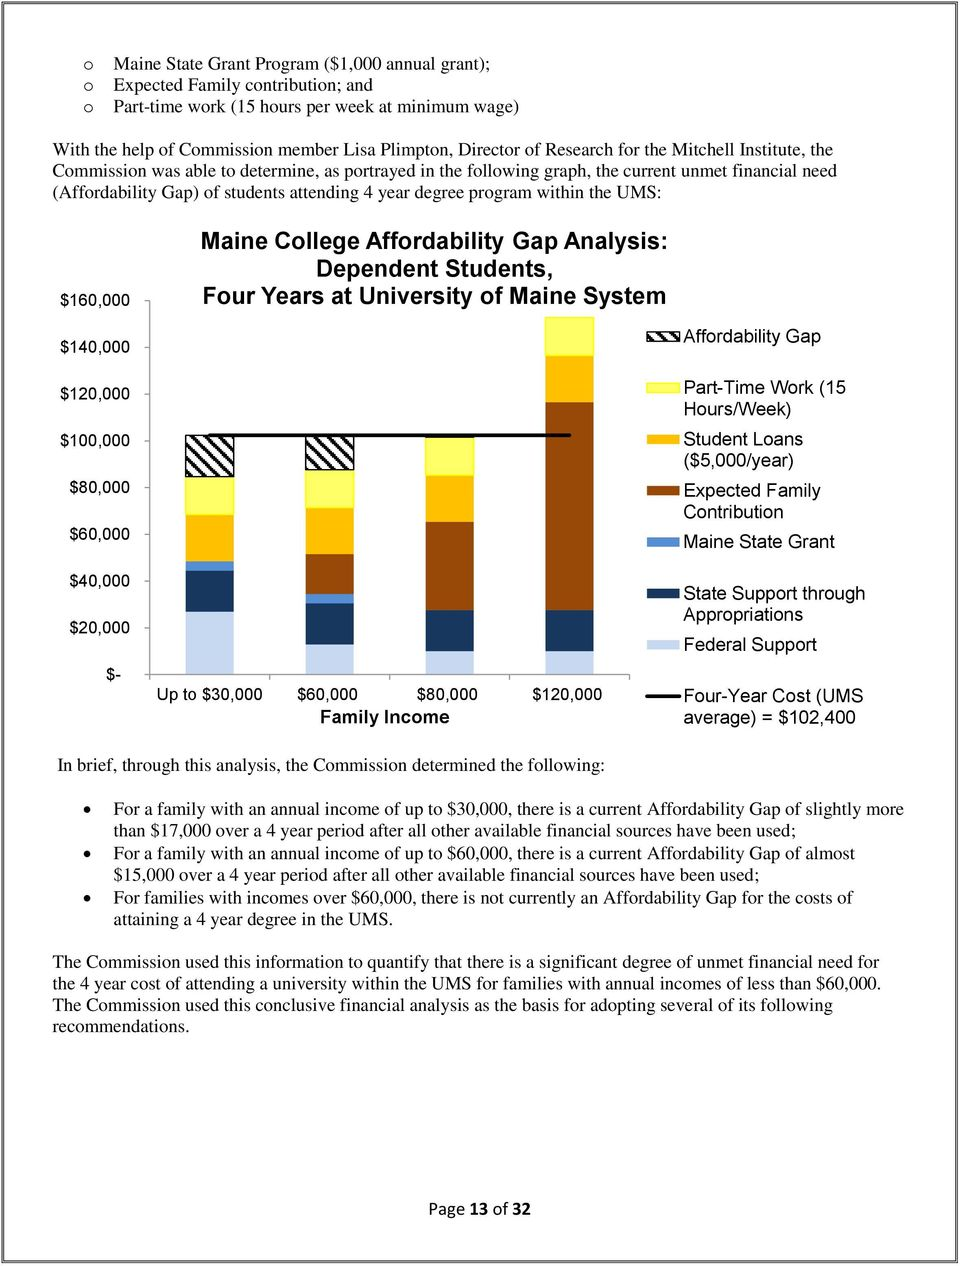 UMS: $160,000 Maine Cllege Affrdability Gap Analysis: Dependent Students, Fur Years at University f Maine System $140,000 $120,000 $100,000 $80,000 $60,000 $40,000 $20,000 $- Up t $30,000 $60,000